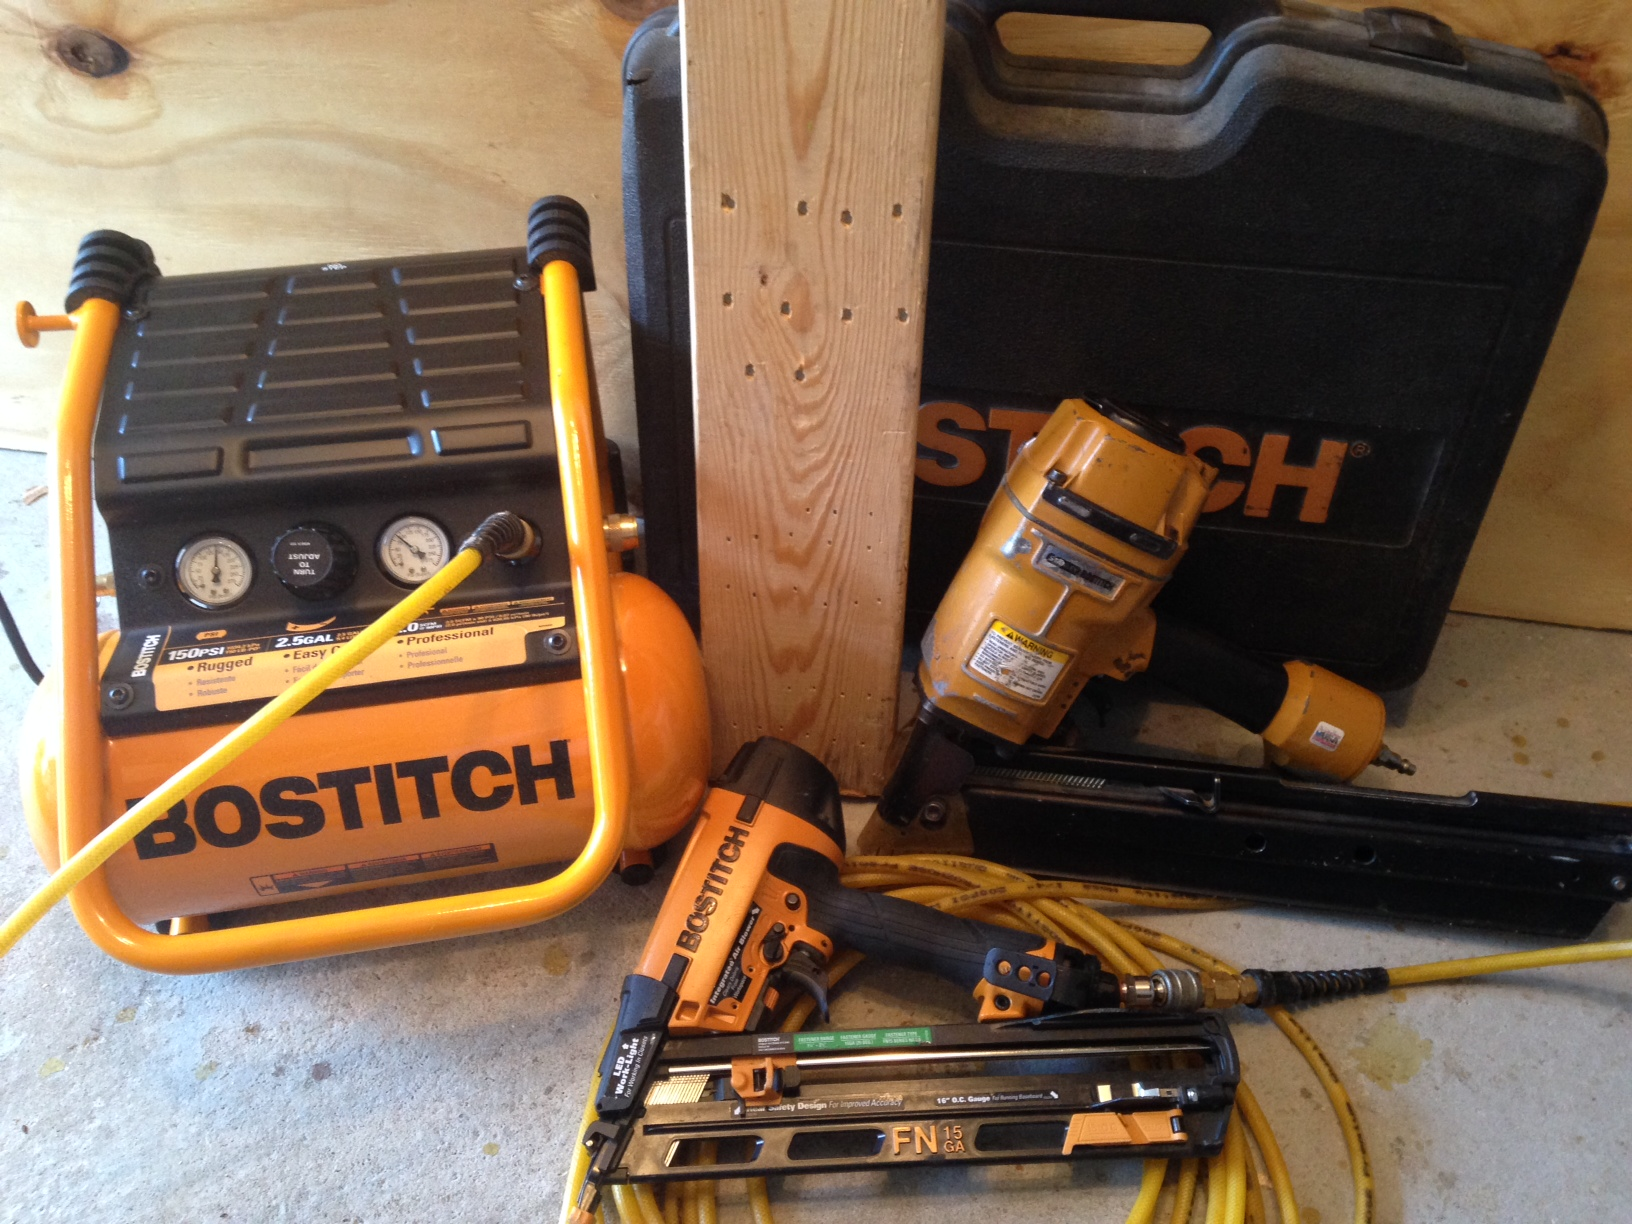 Bostitch 2.5 Gallon Compressor BTFP01012 - A Concord Carpenter